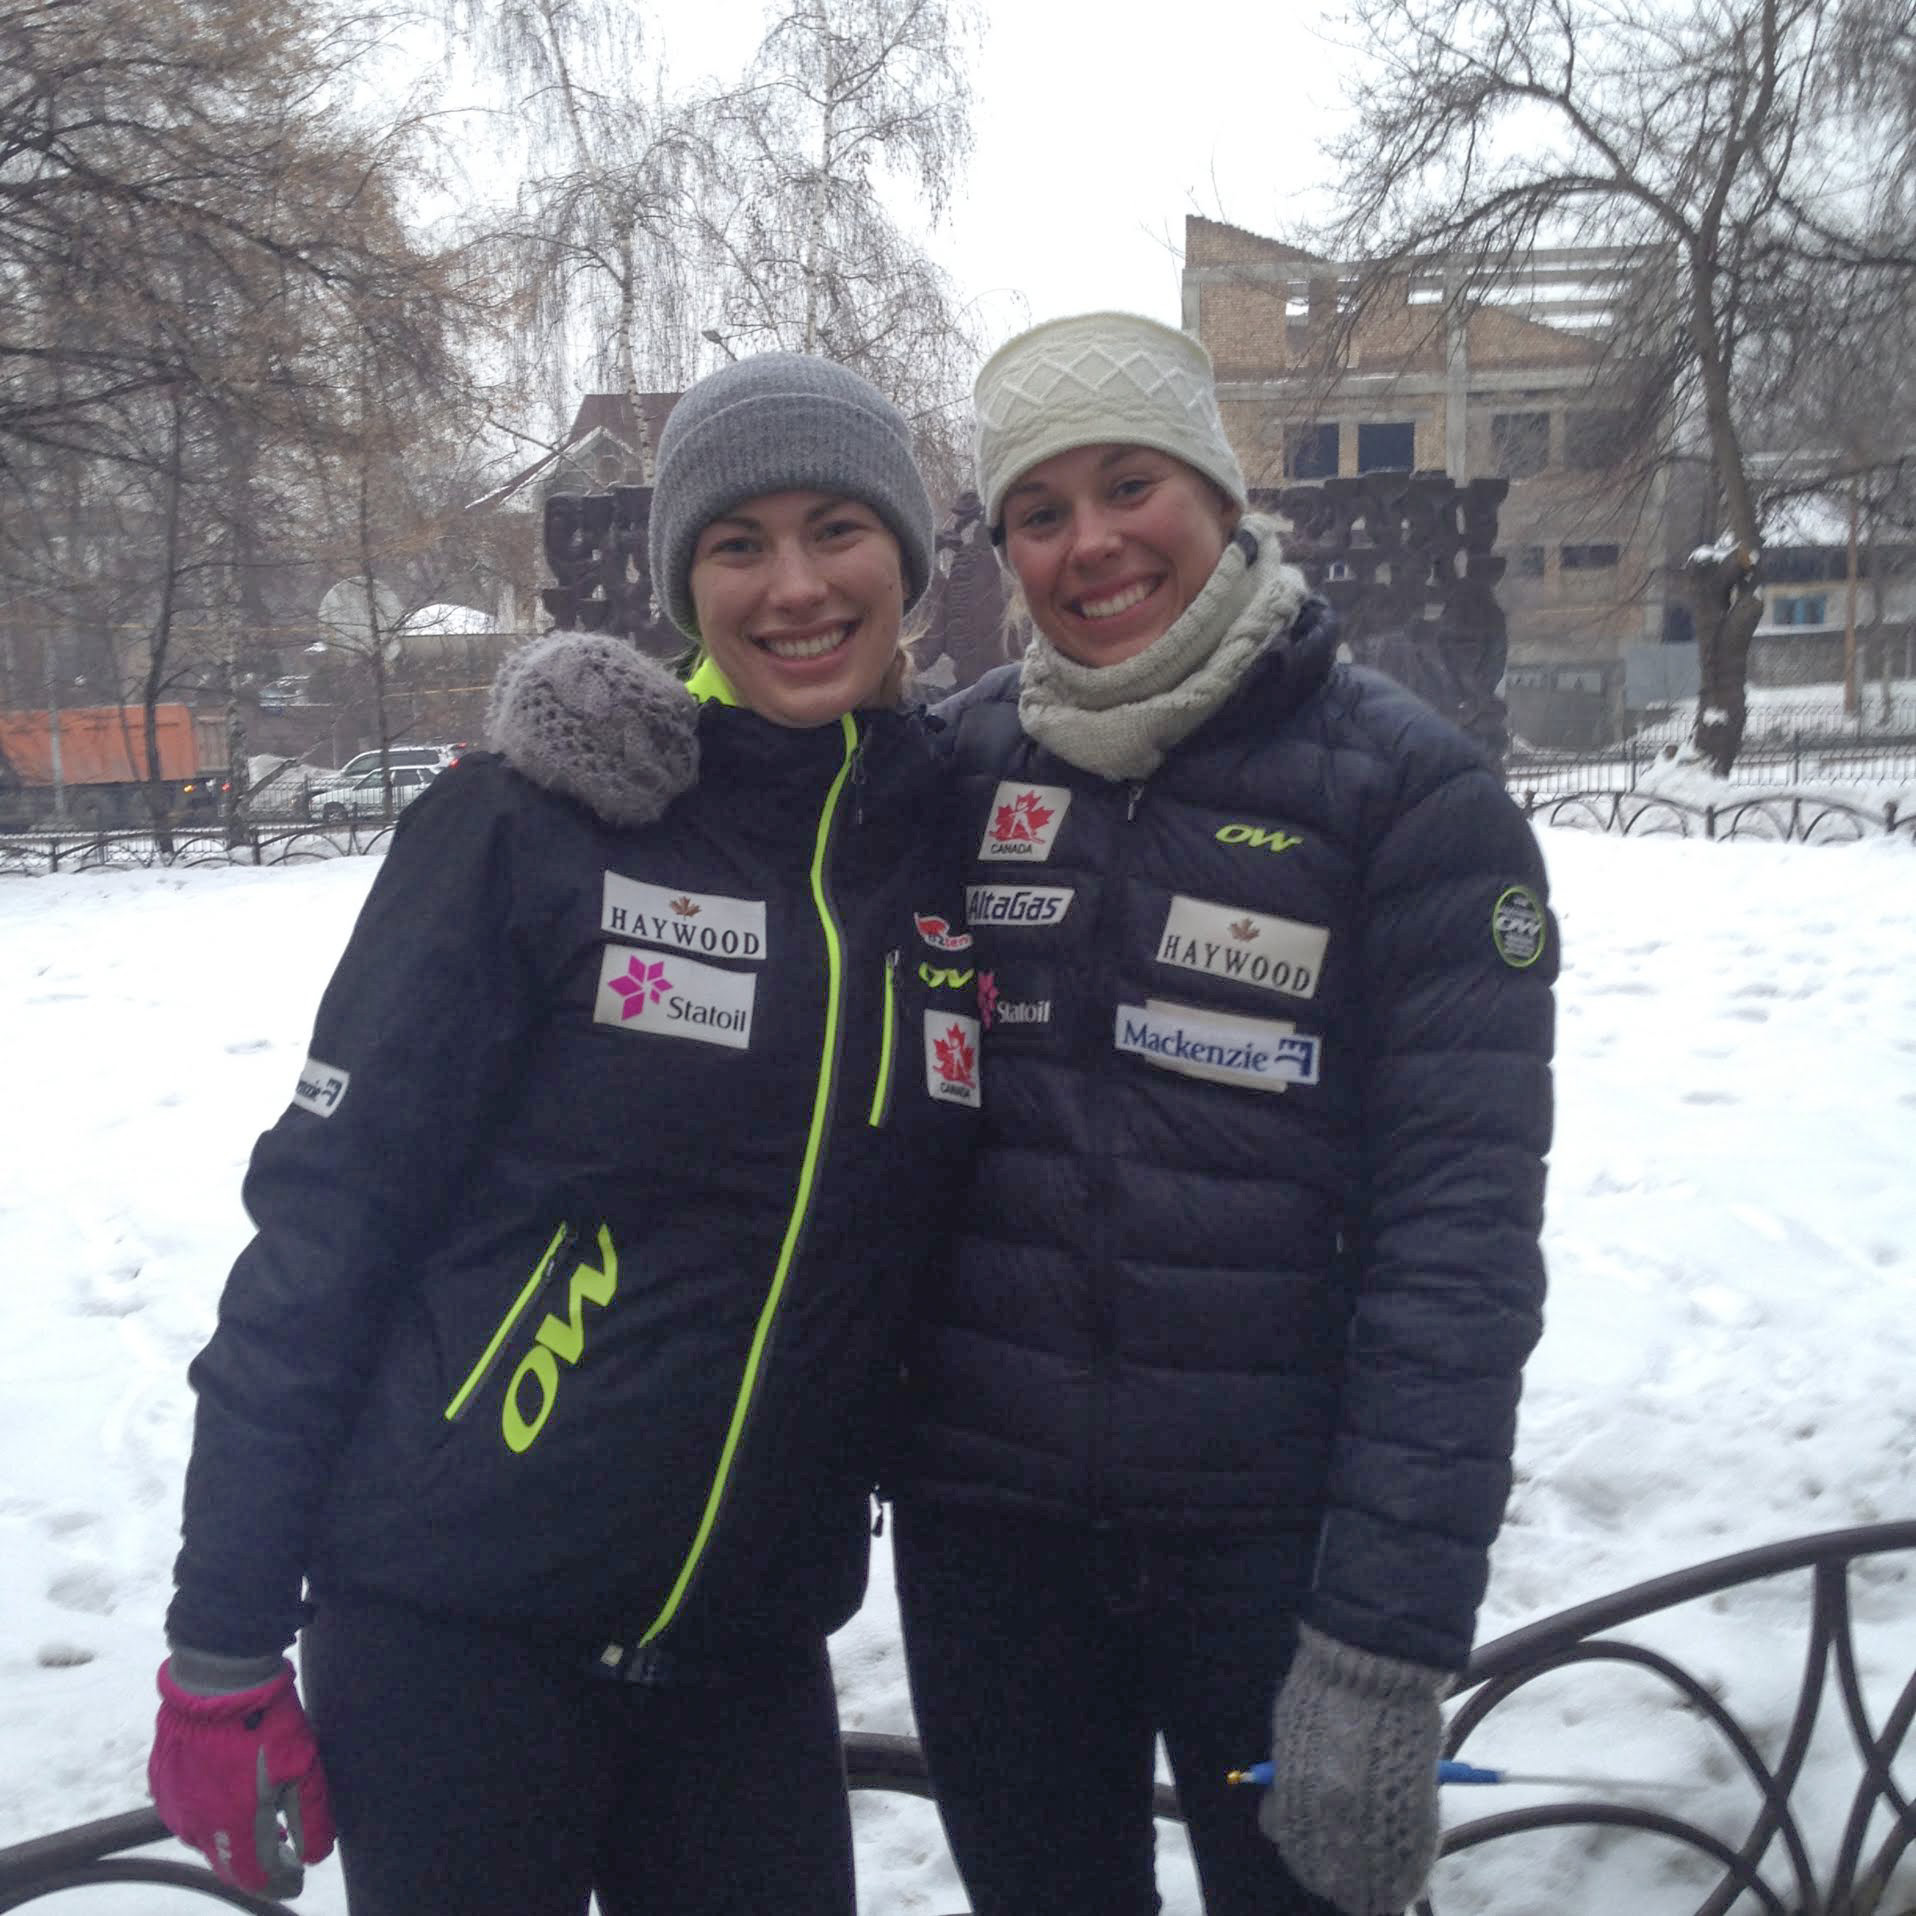 Dahria Beatty and Maya MacIsaac-Jones in Almaty